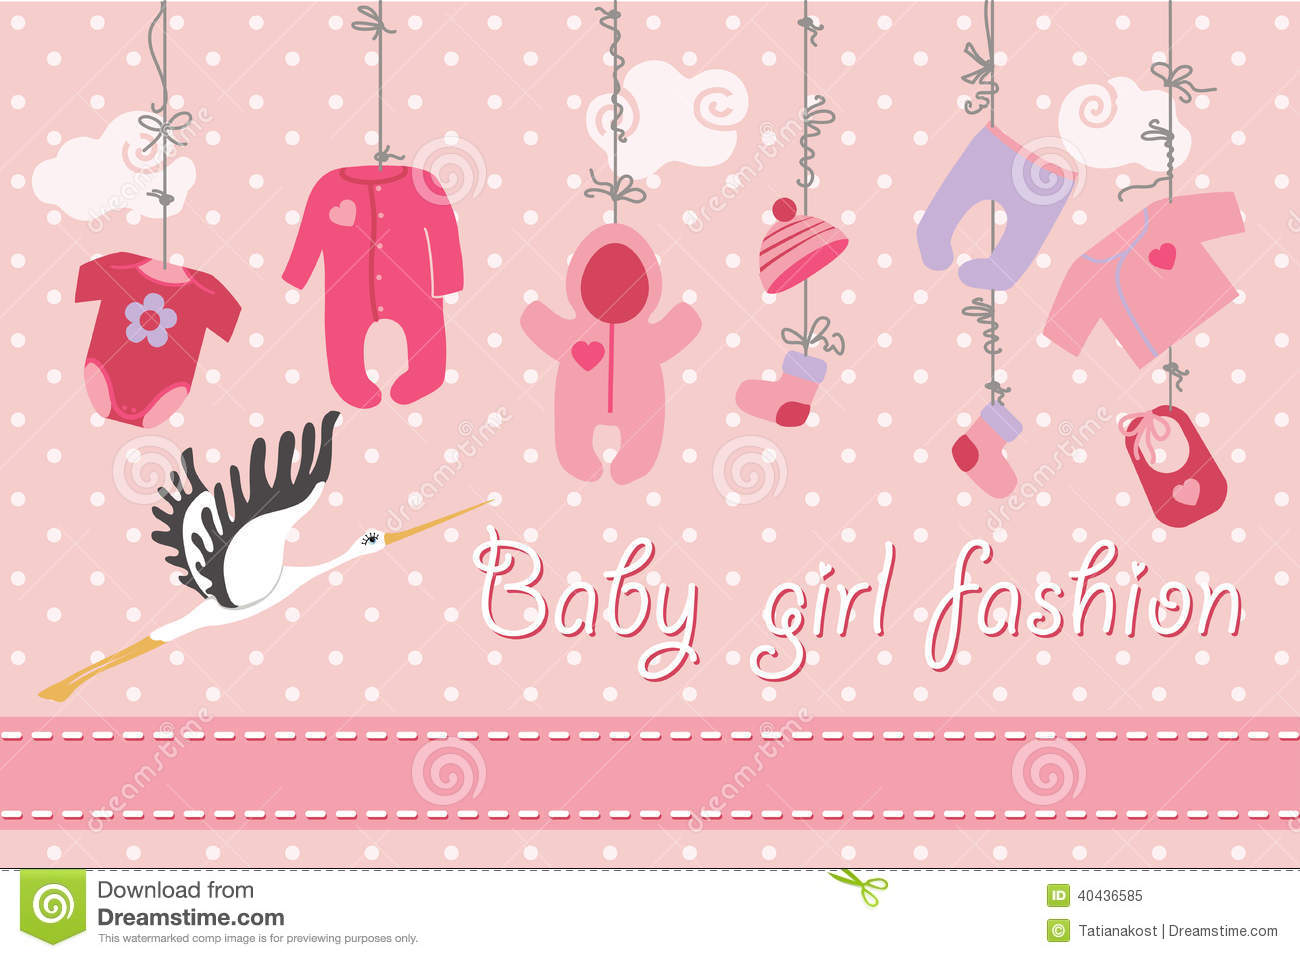 New greeting for baby girl born for greeting born girl baby the on stock baby treeby boy born clothes vector m4hsunfo